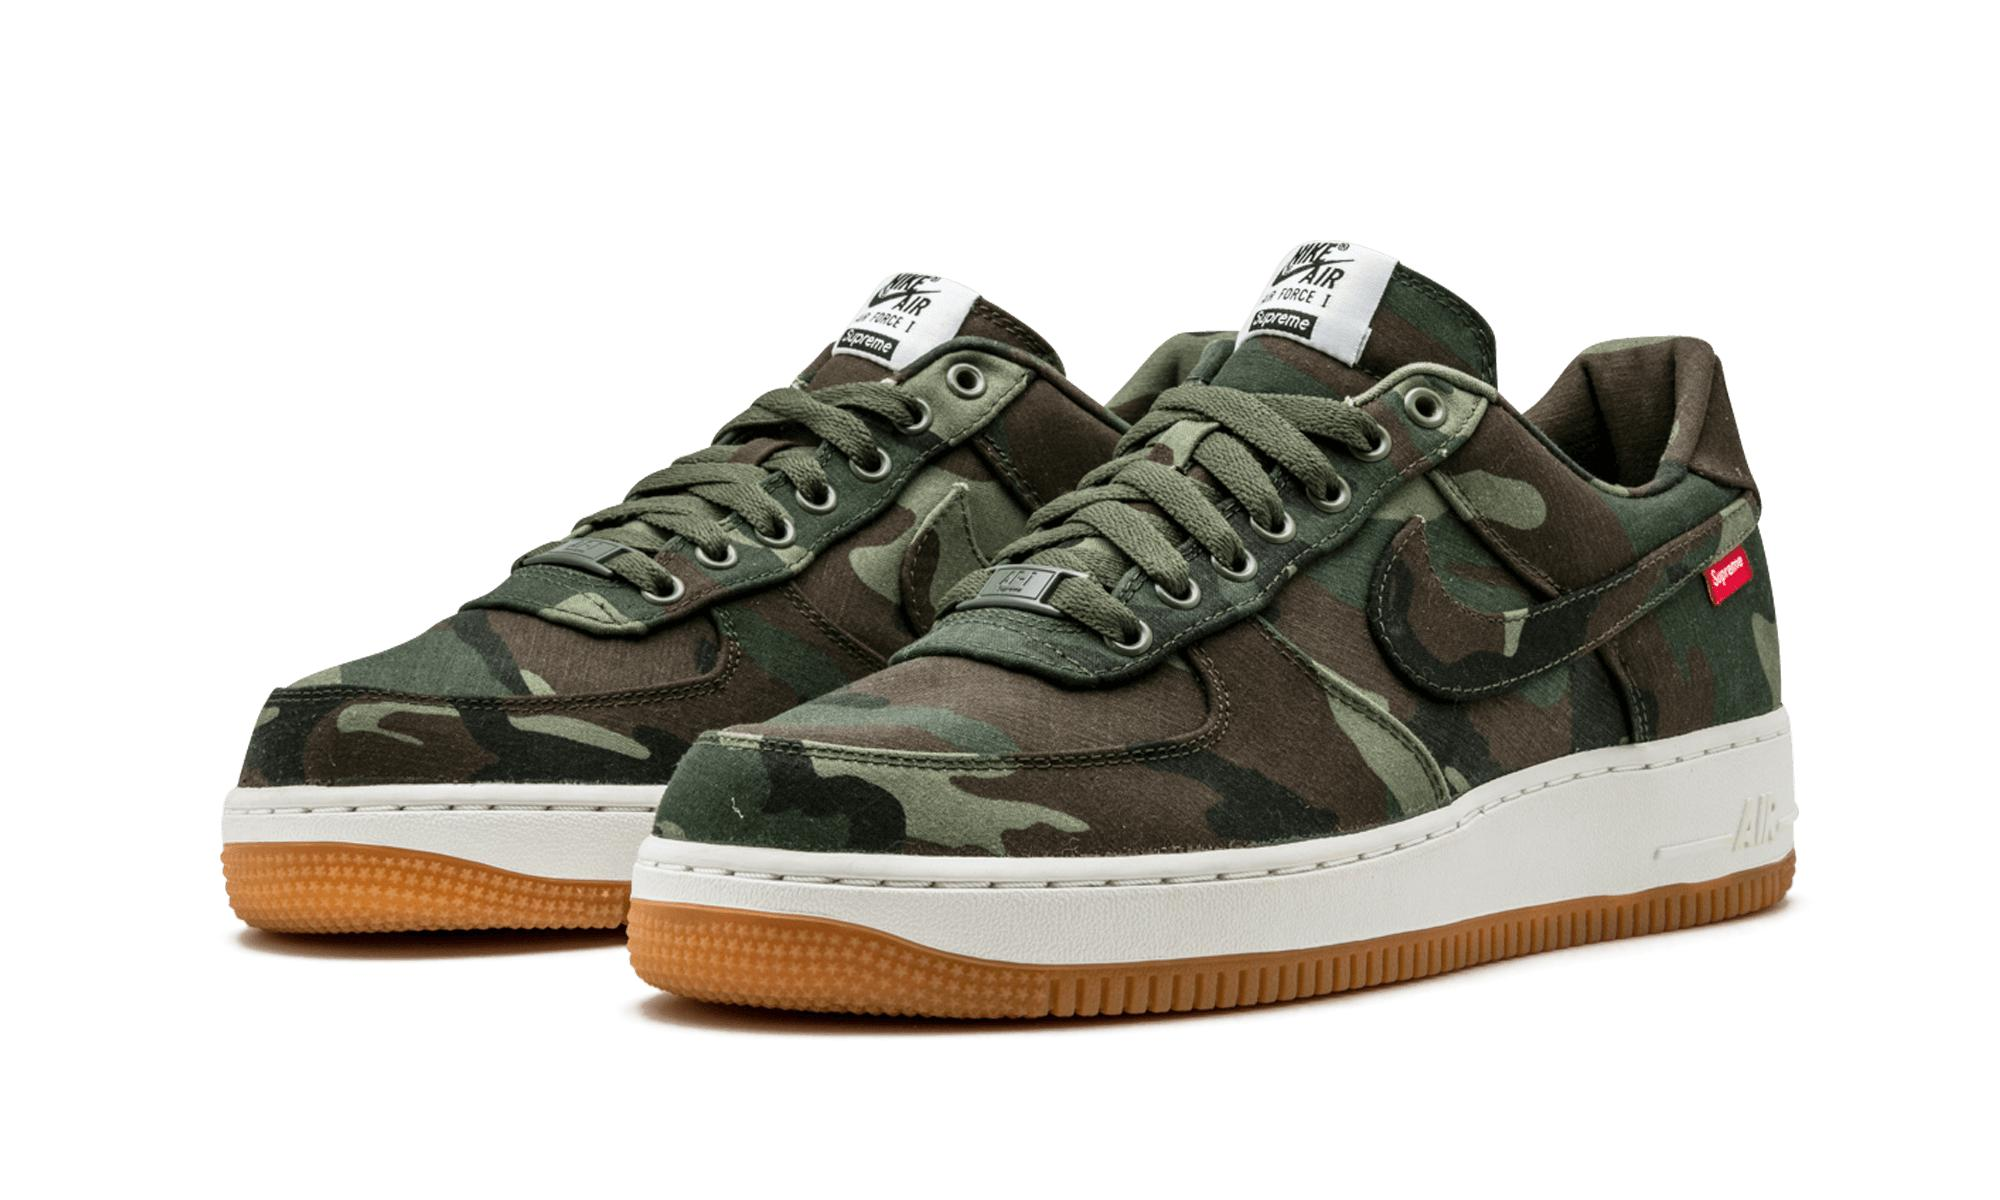 check out 86e87 3a15c Nike - Multicolor Air Force 1 Low Premium 08 Nrg for Men - Lyst. View  fullscreen